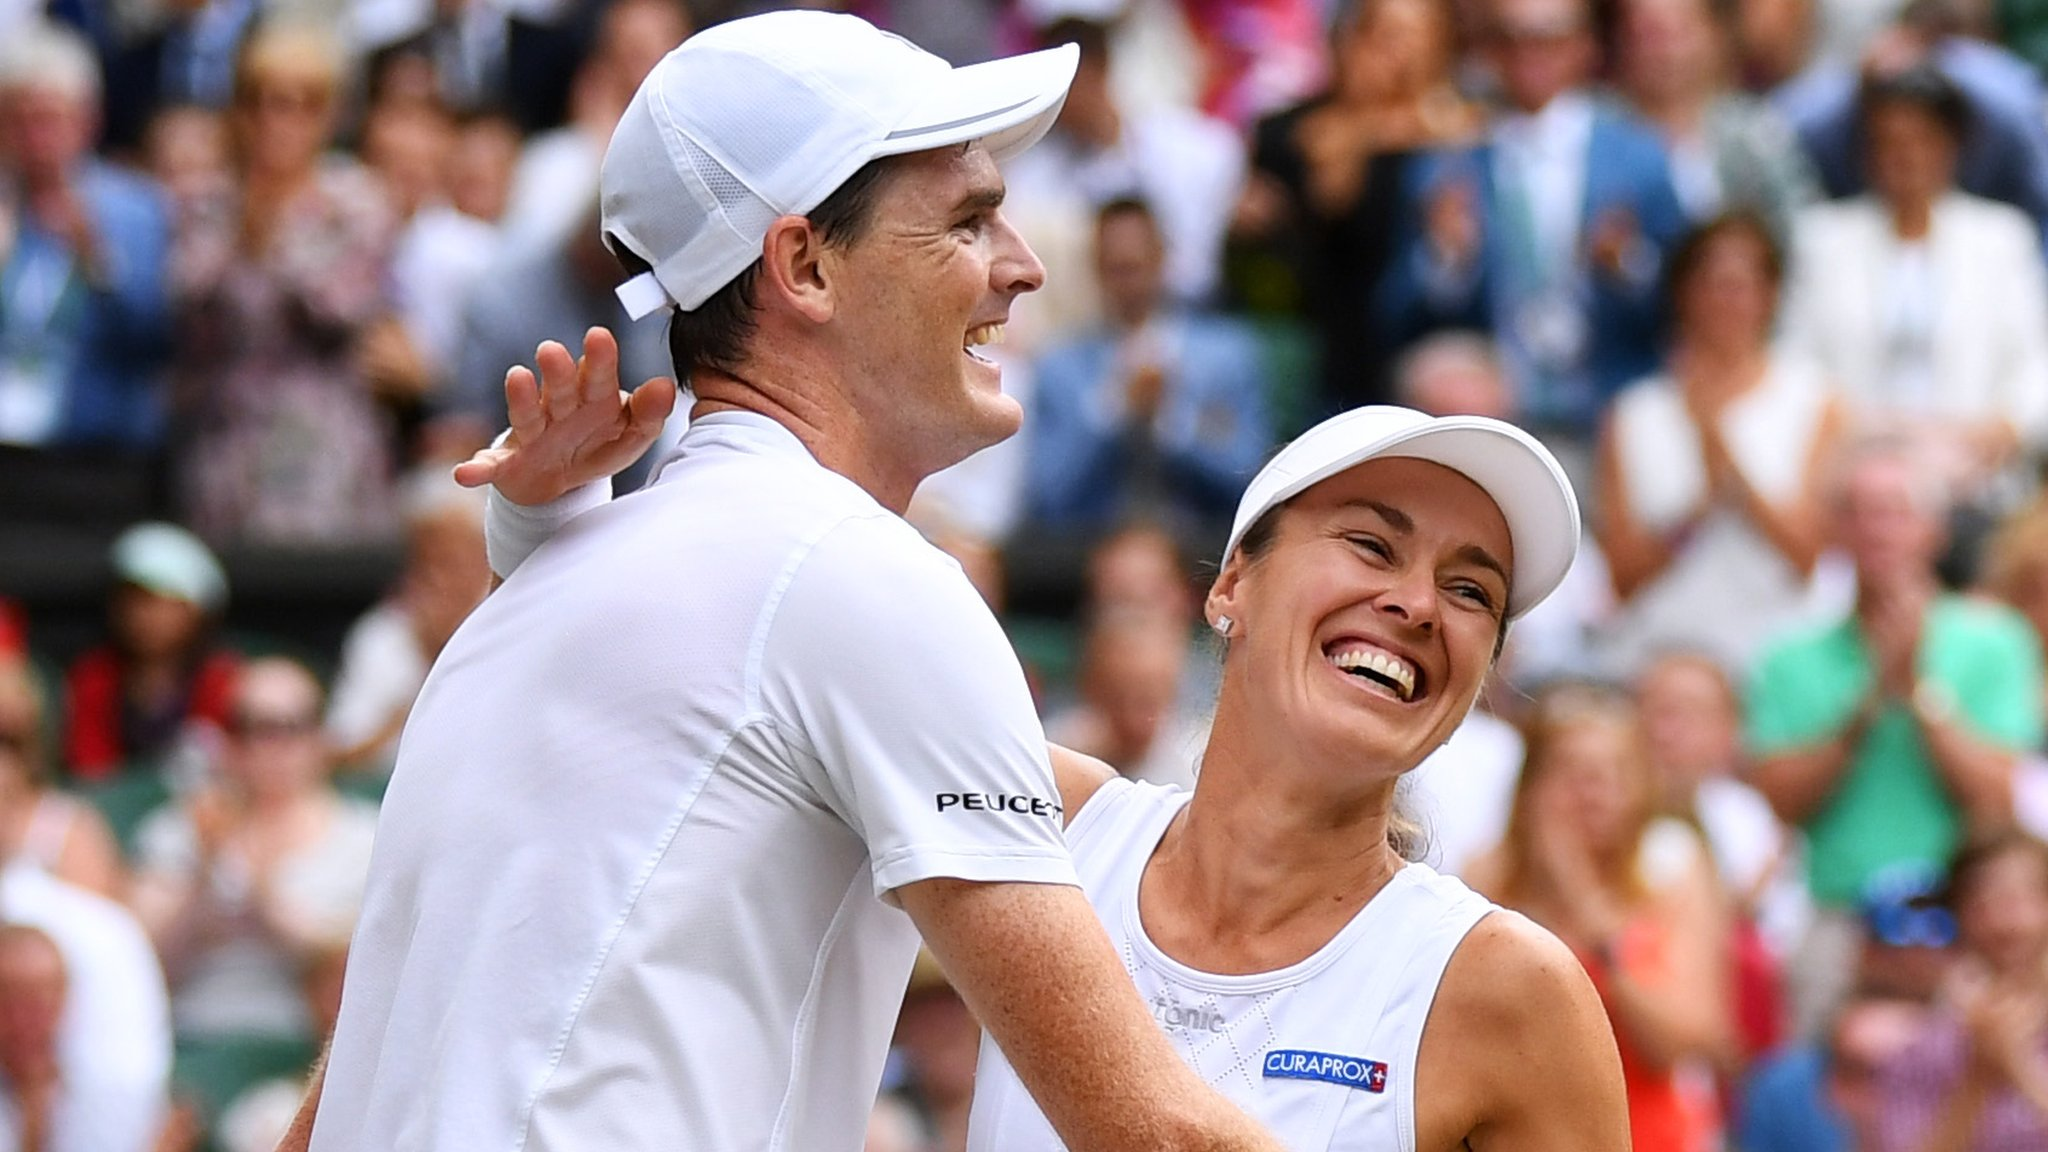 Jamie Murray and Hingis 'won Wimbledon mixed doubles with a smile'